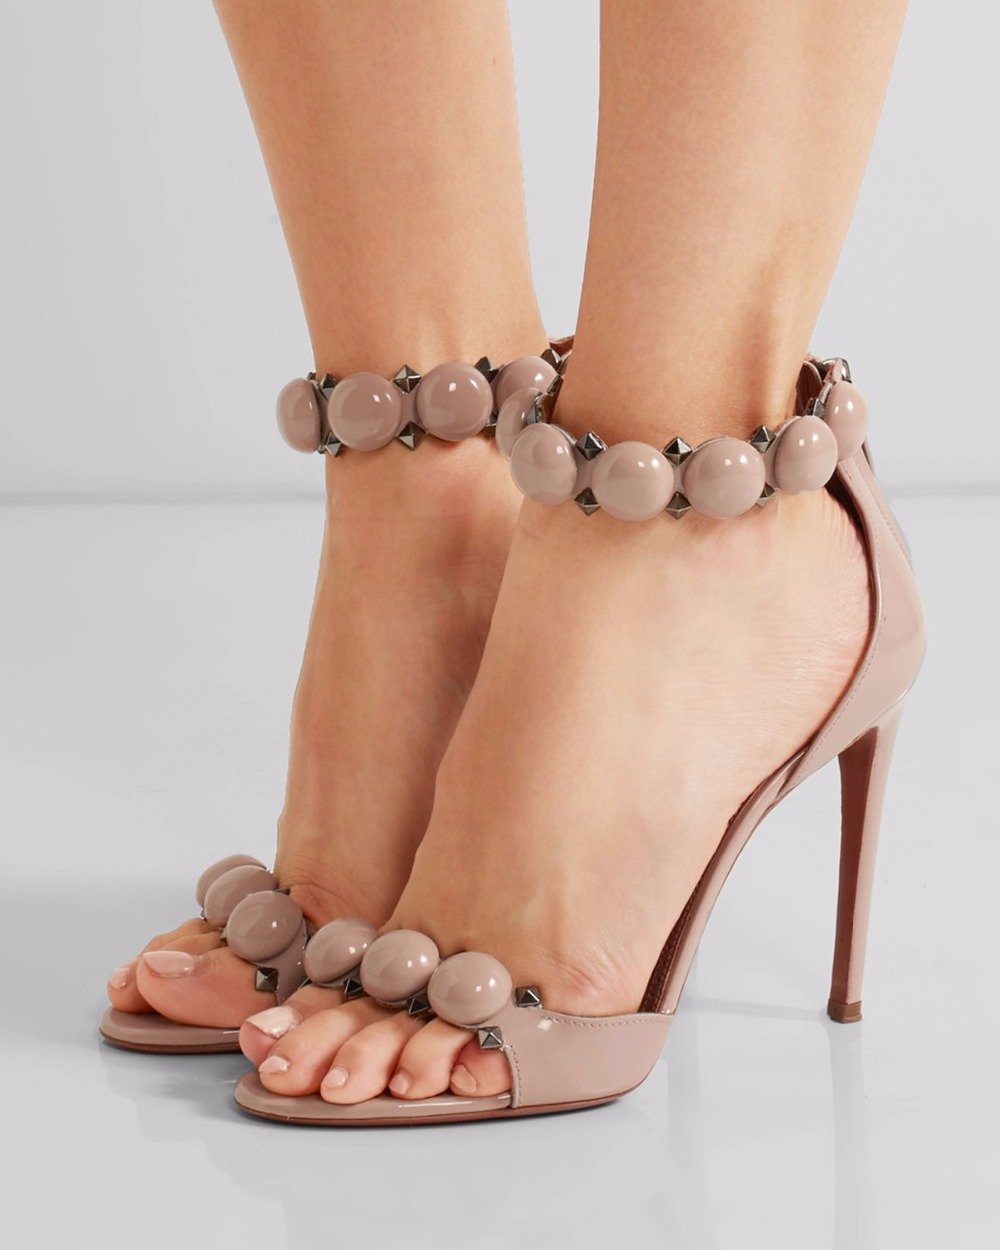 d40aa616ab53 Fashion T-bar High Heels Women s Sandals Open Toe Sexy Summer Party Shoes  Pom Pom Buttoned Straps Studded nude Suede Sandals